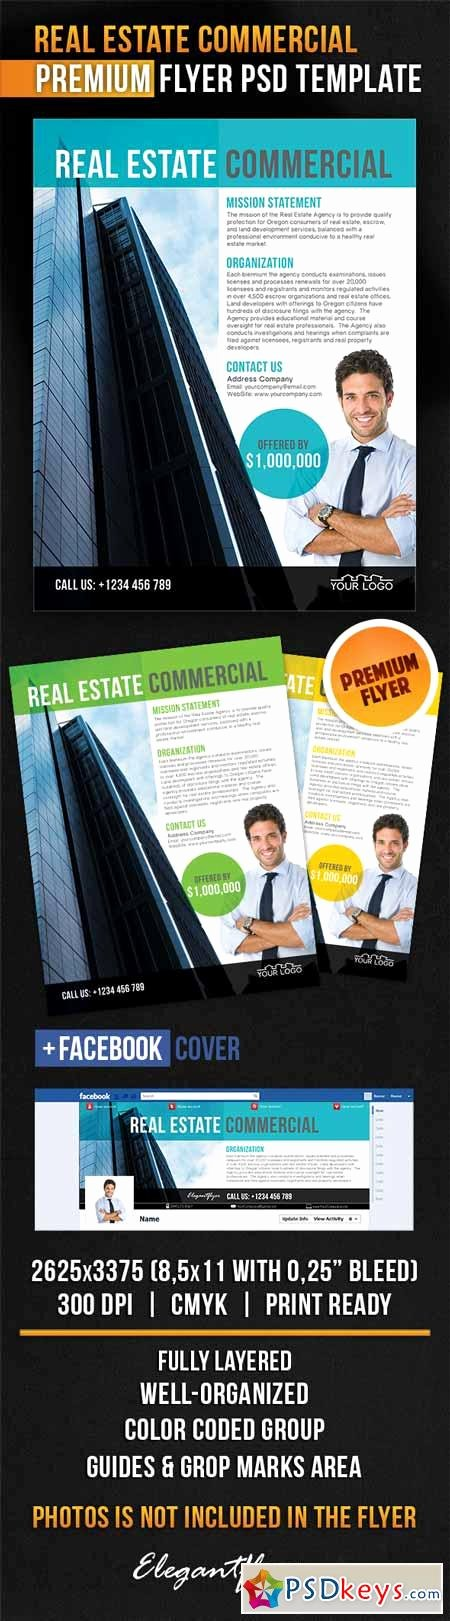 Commercial Real Estate Flyer Template New Real Estate Mercial – Flyer Psd Template